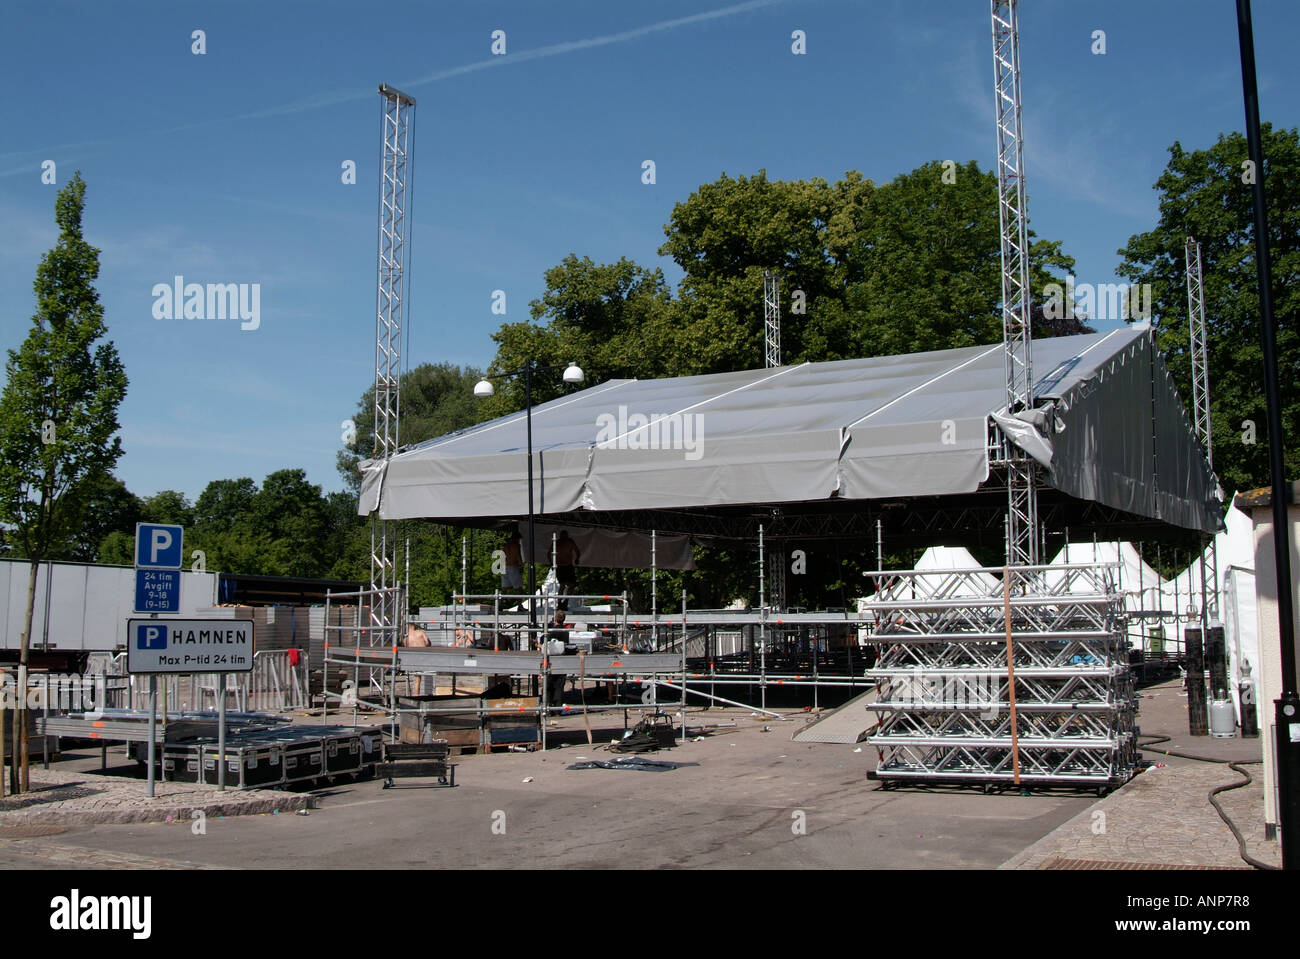 Roadies, roadie, rock, and, roll, lifestyle, music, dismantling, outdoor, stage, constructing, concert, music, - Stock Image